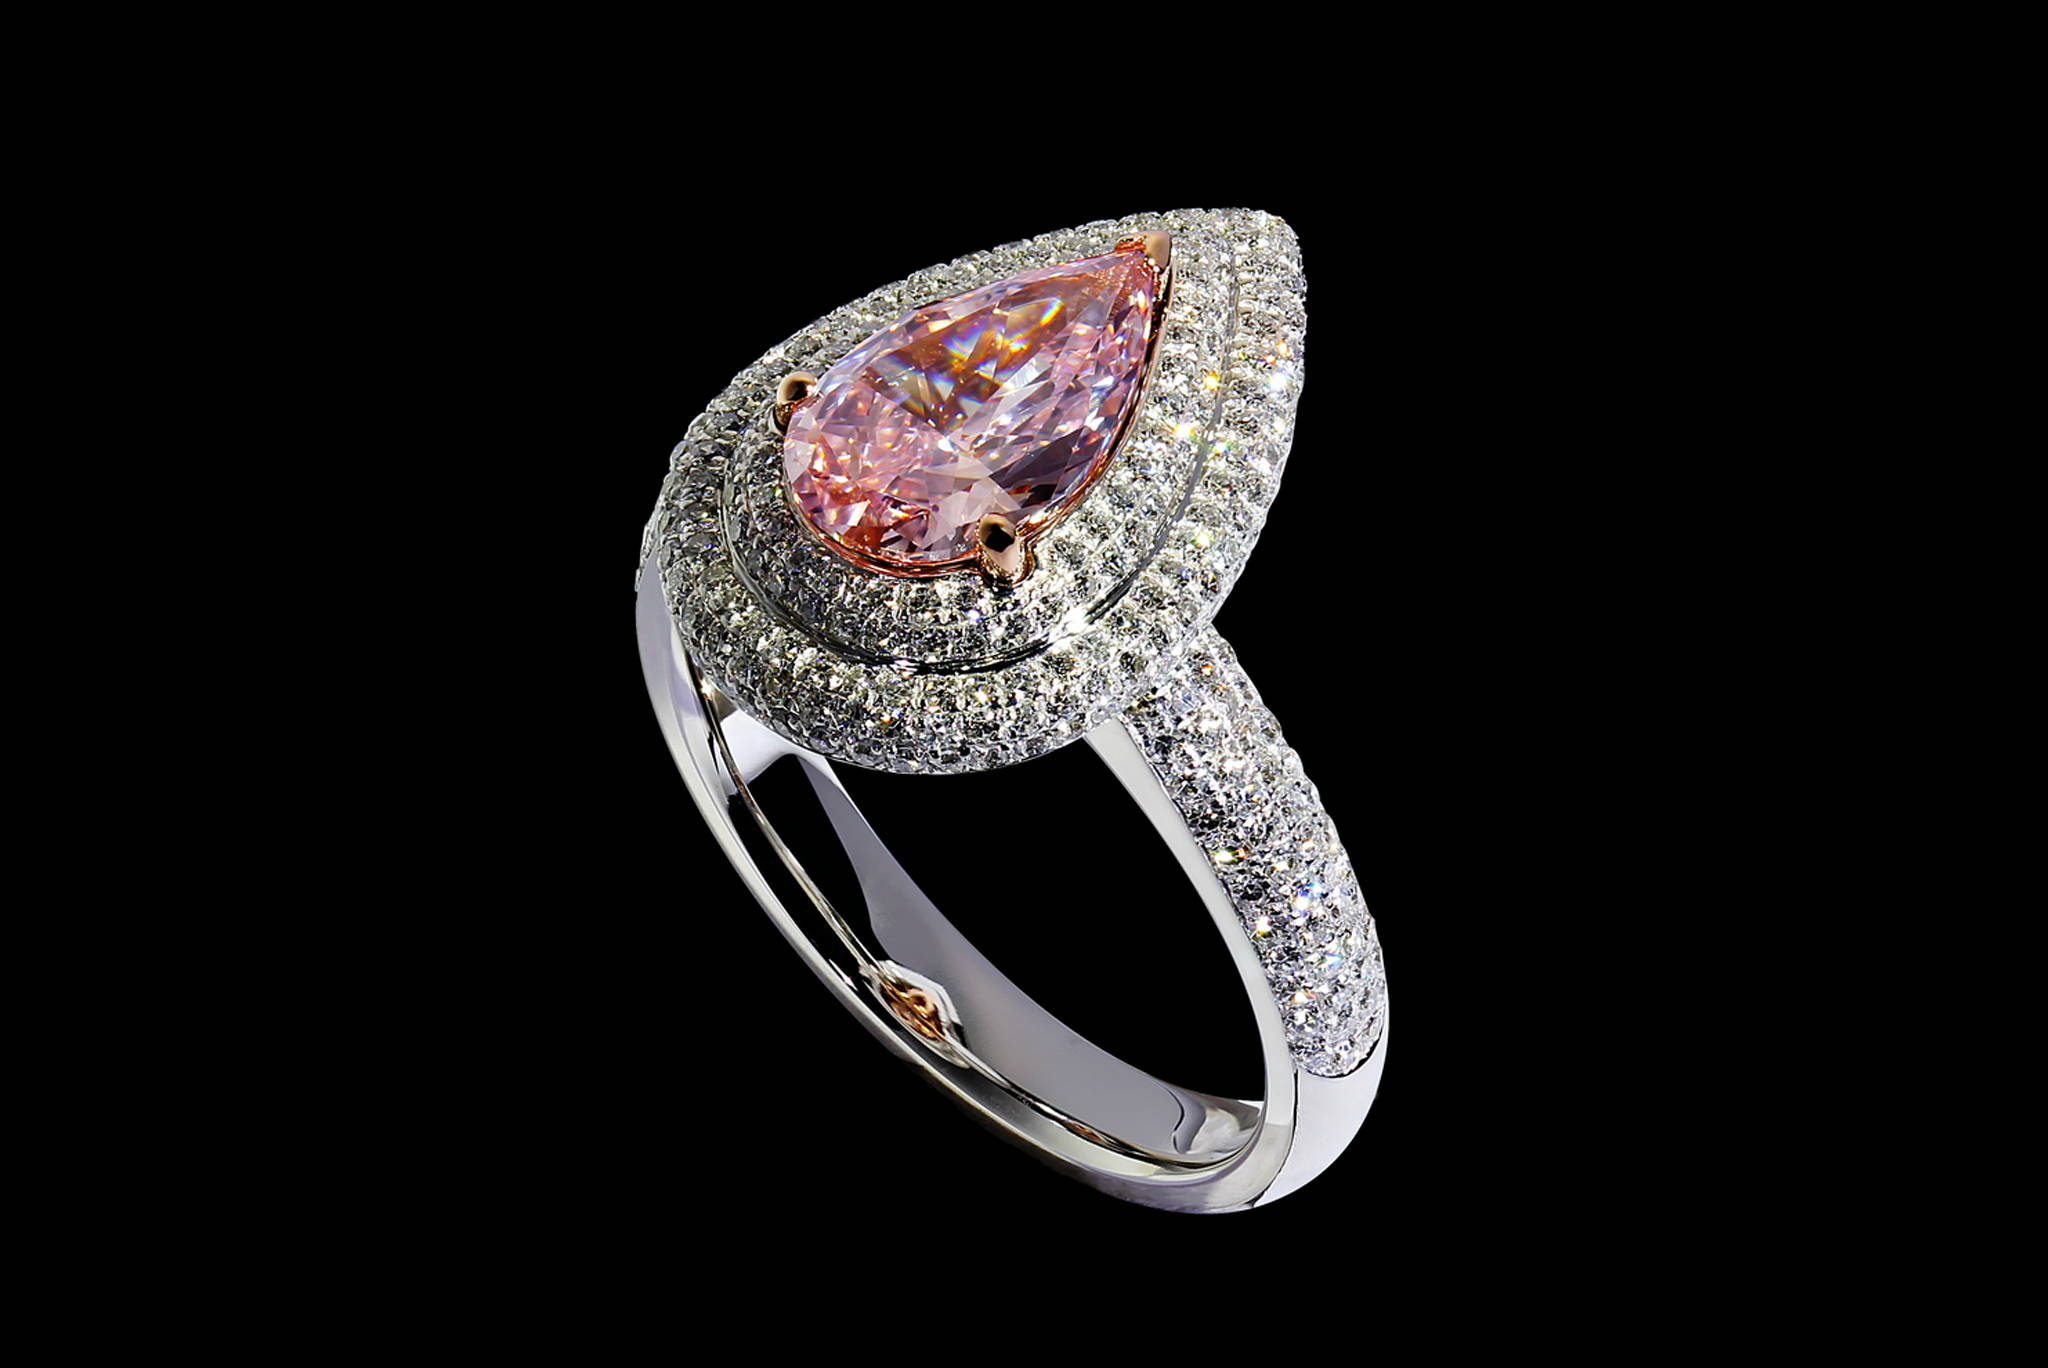 Vintage Style Pink Diamond Ring